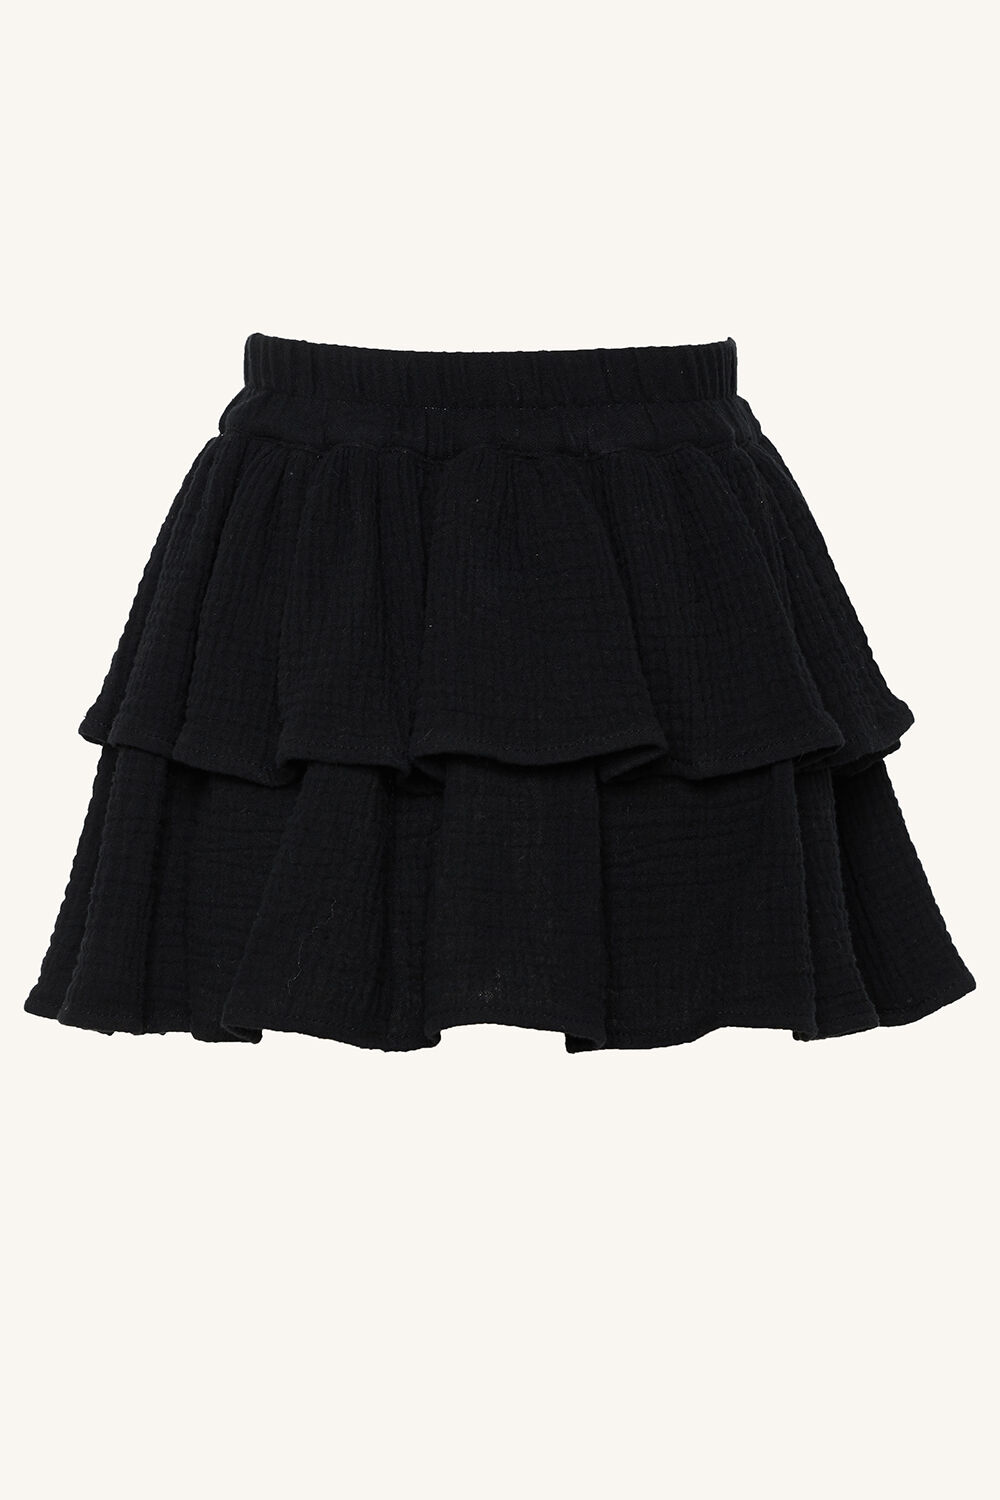 ELENA RARA SKIRT in colour JET BLACK